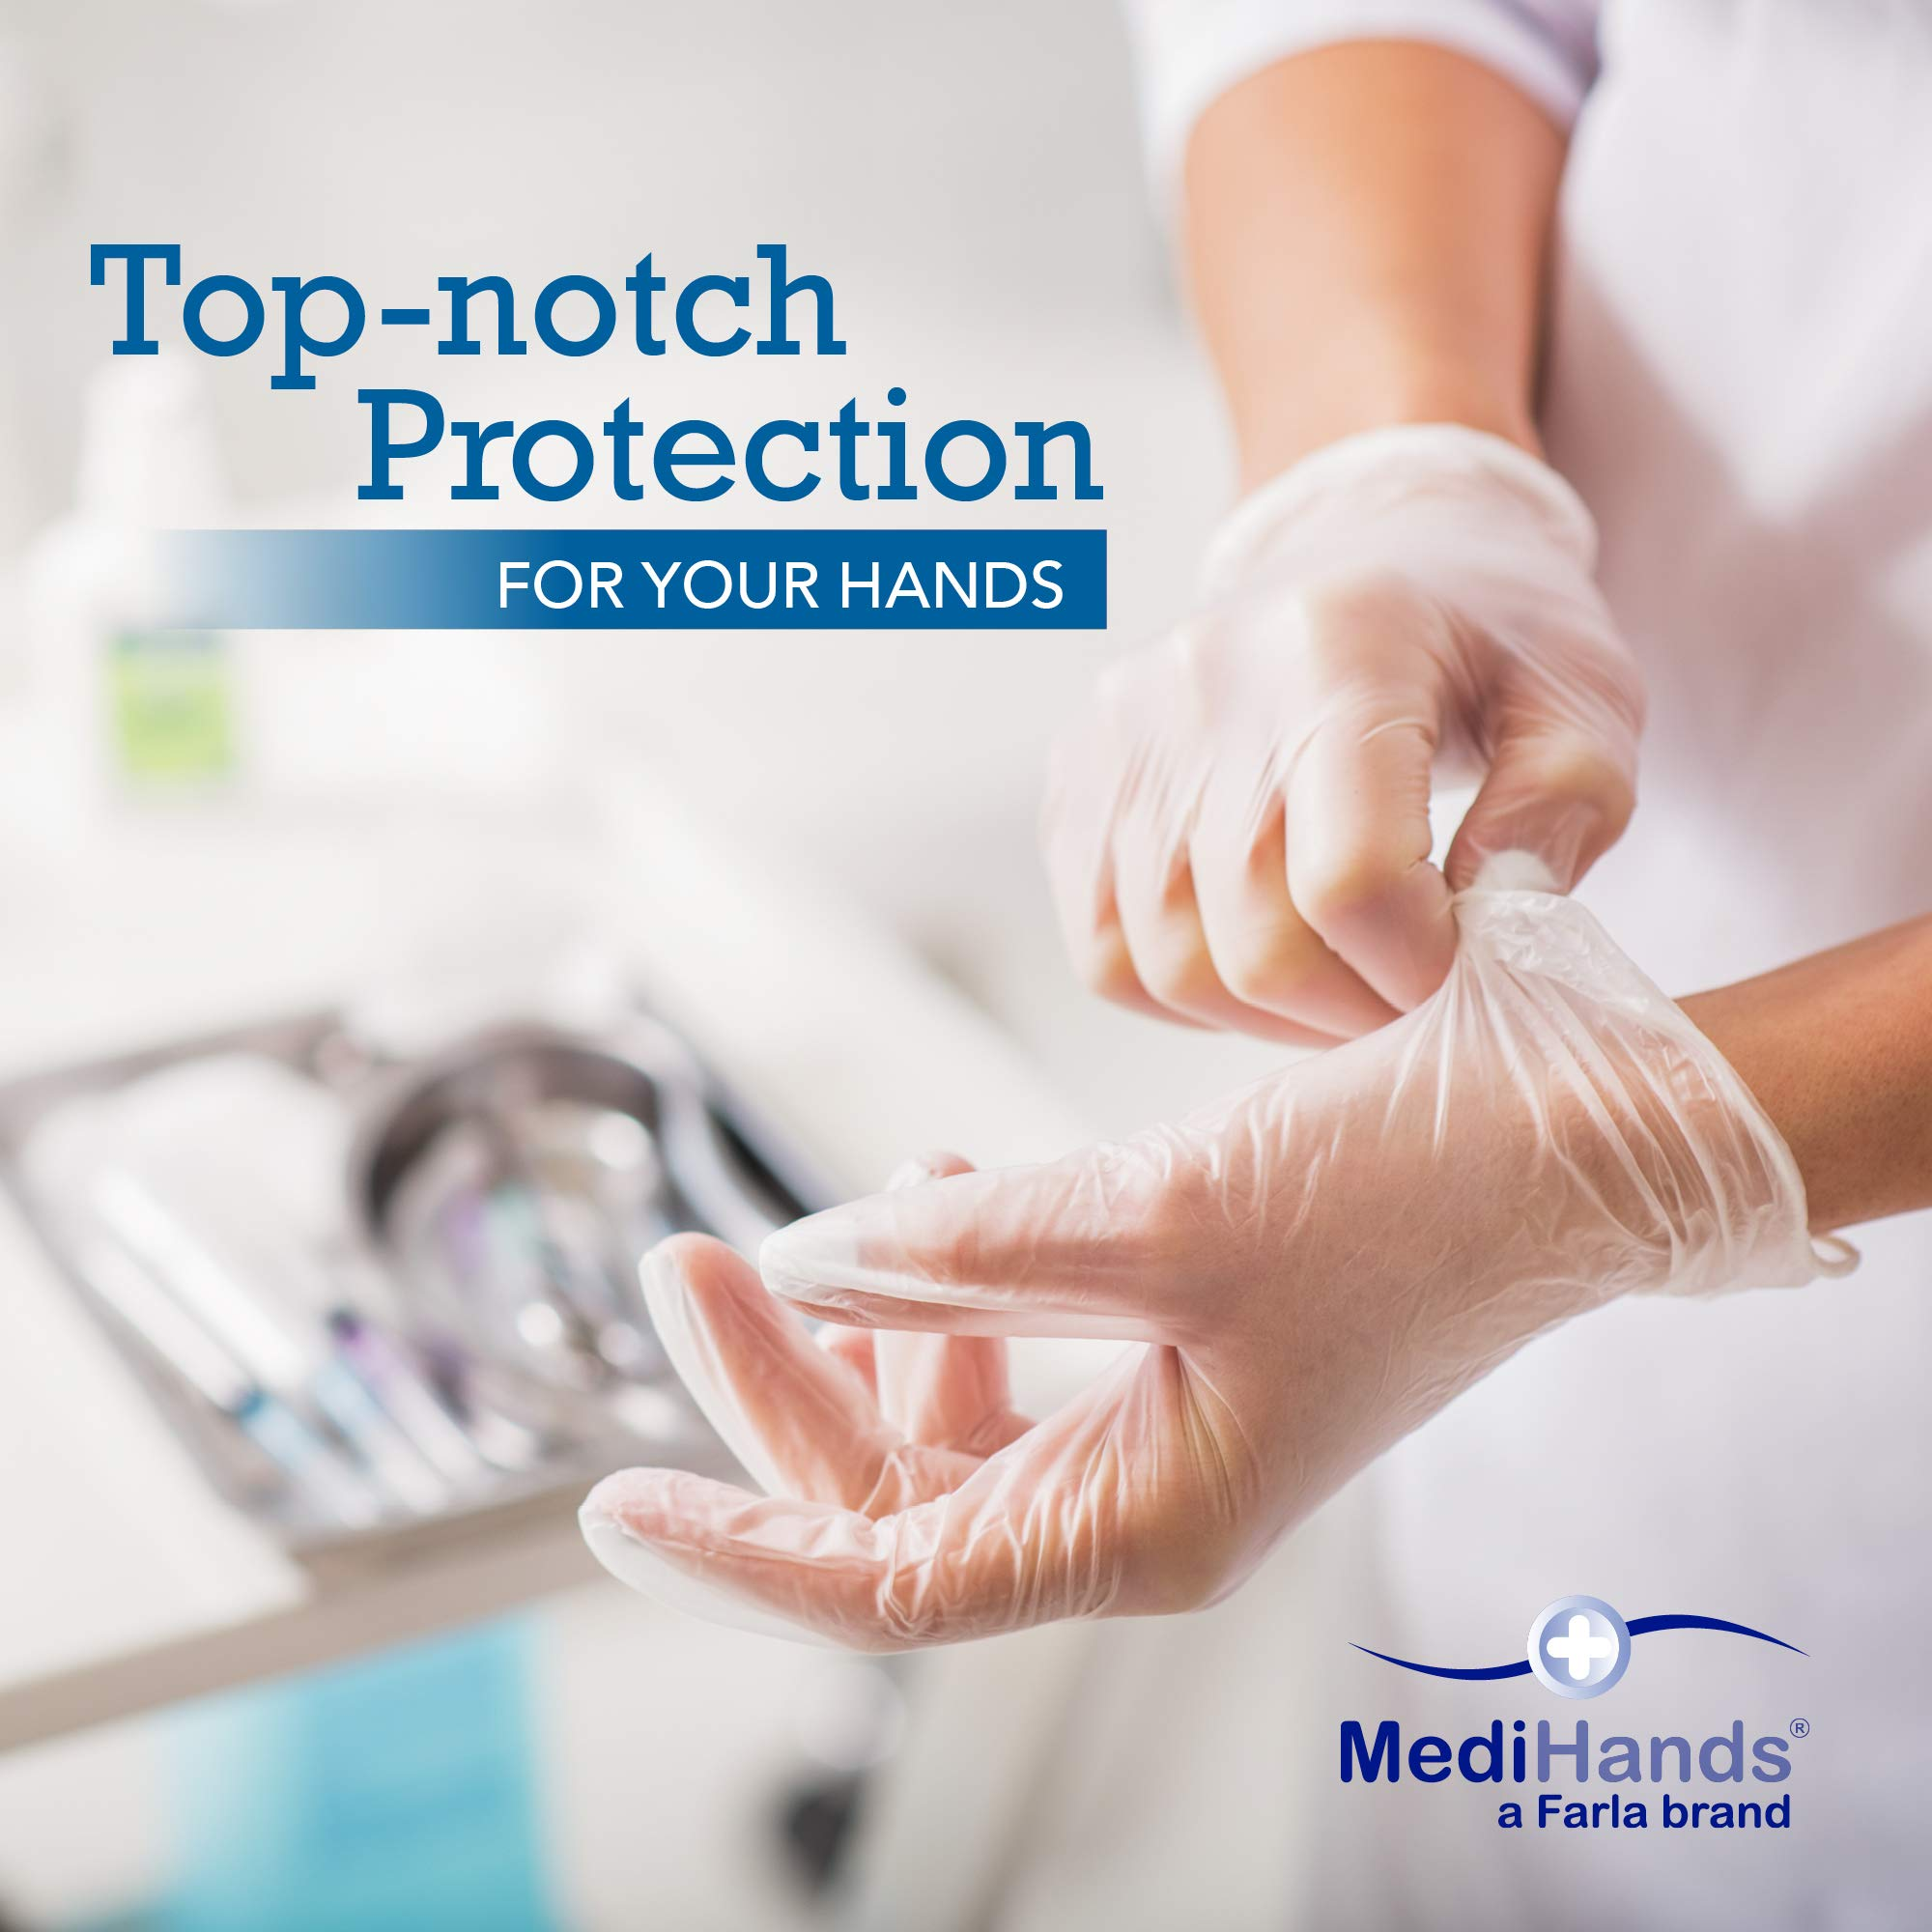 Heavy Duty Disposable Vinyl Gloves, 1,000 Count, Medium – Powder Free, Ambidextrous, Super Comfortable, Extra Strong, Durable and Stretchy, Medical, Food and Multi Use – By MediHands by MediHands (Image #5)